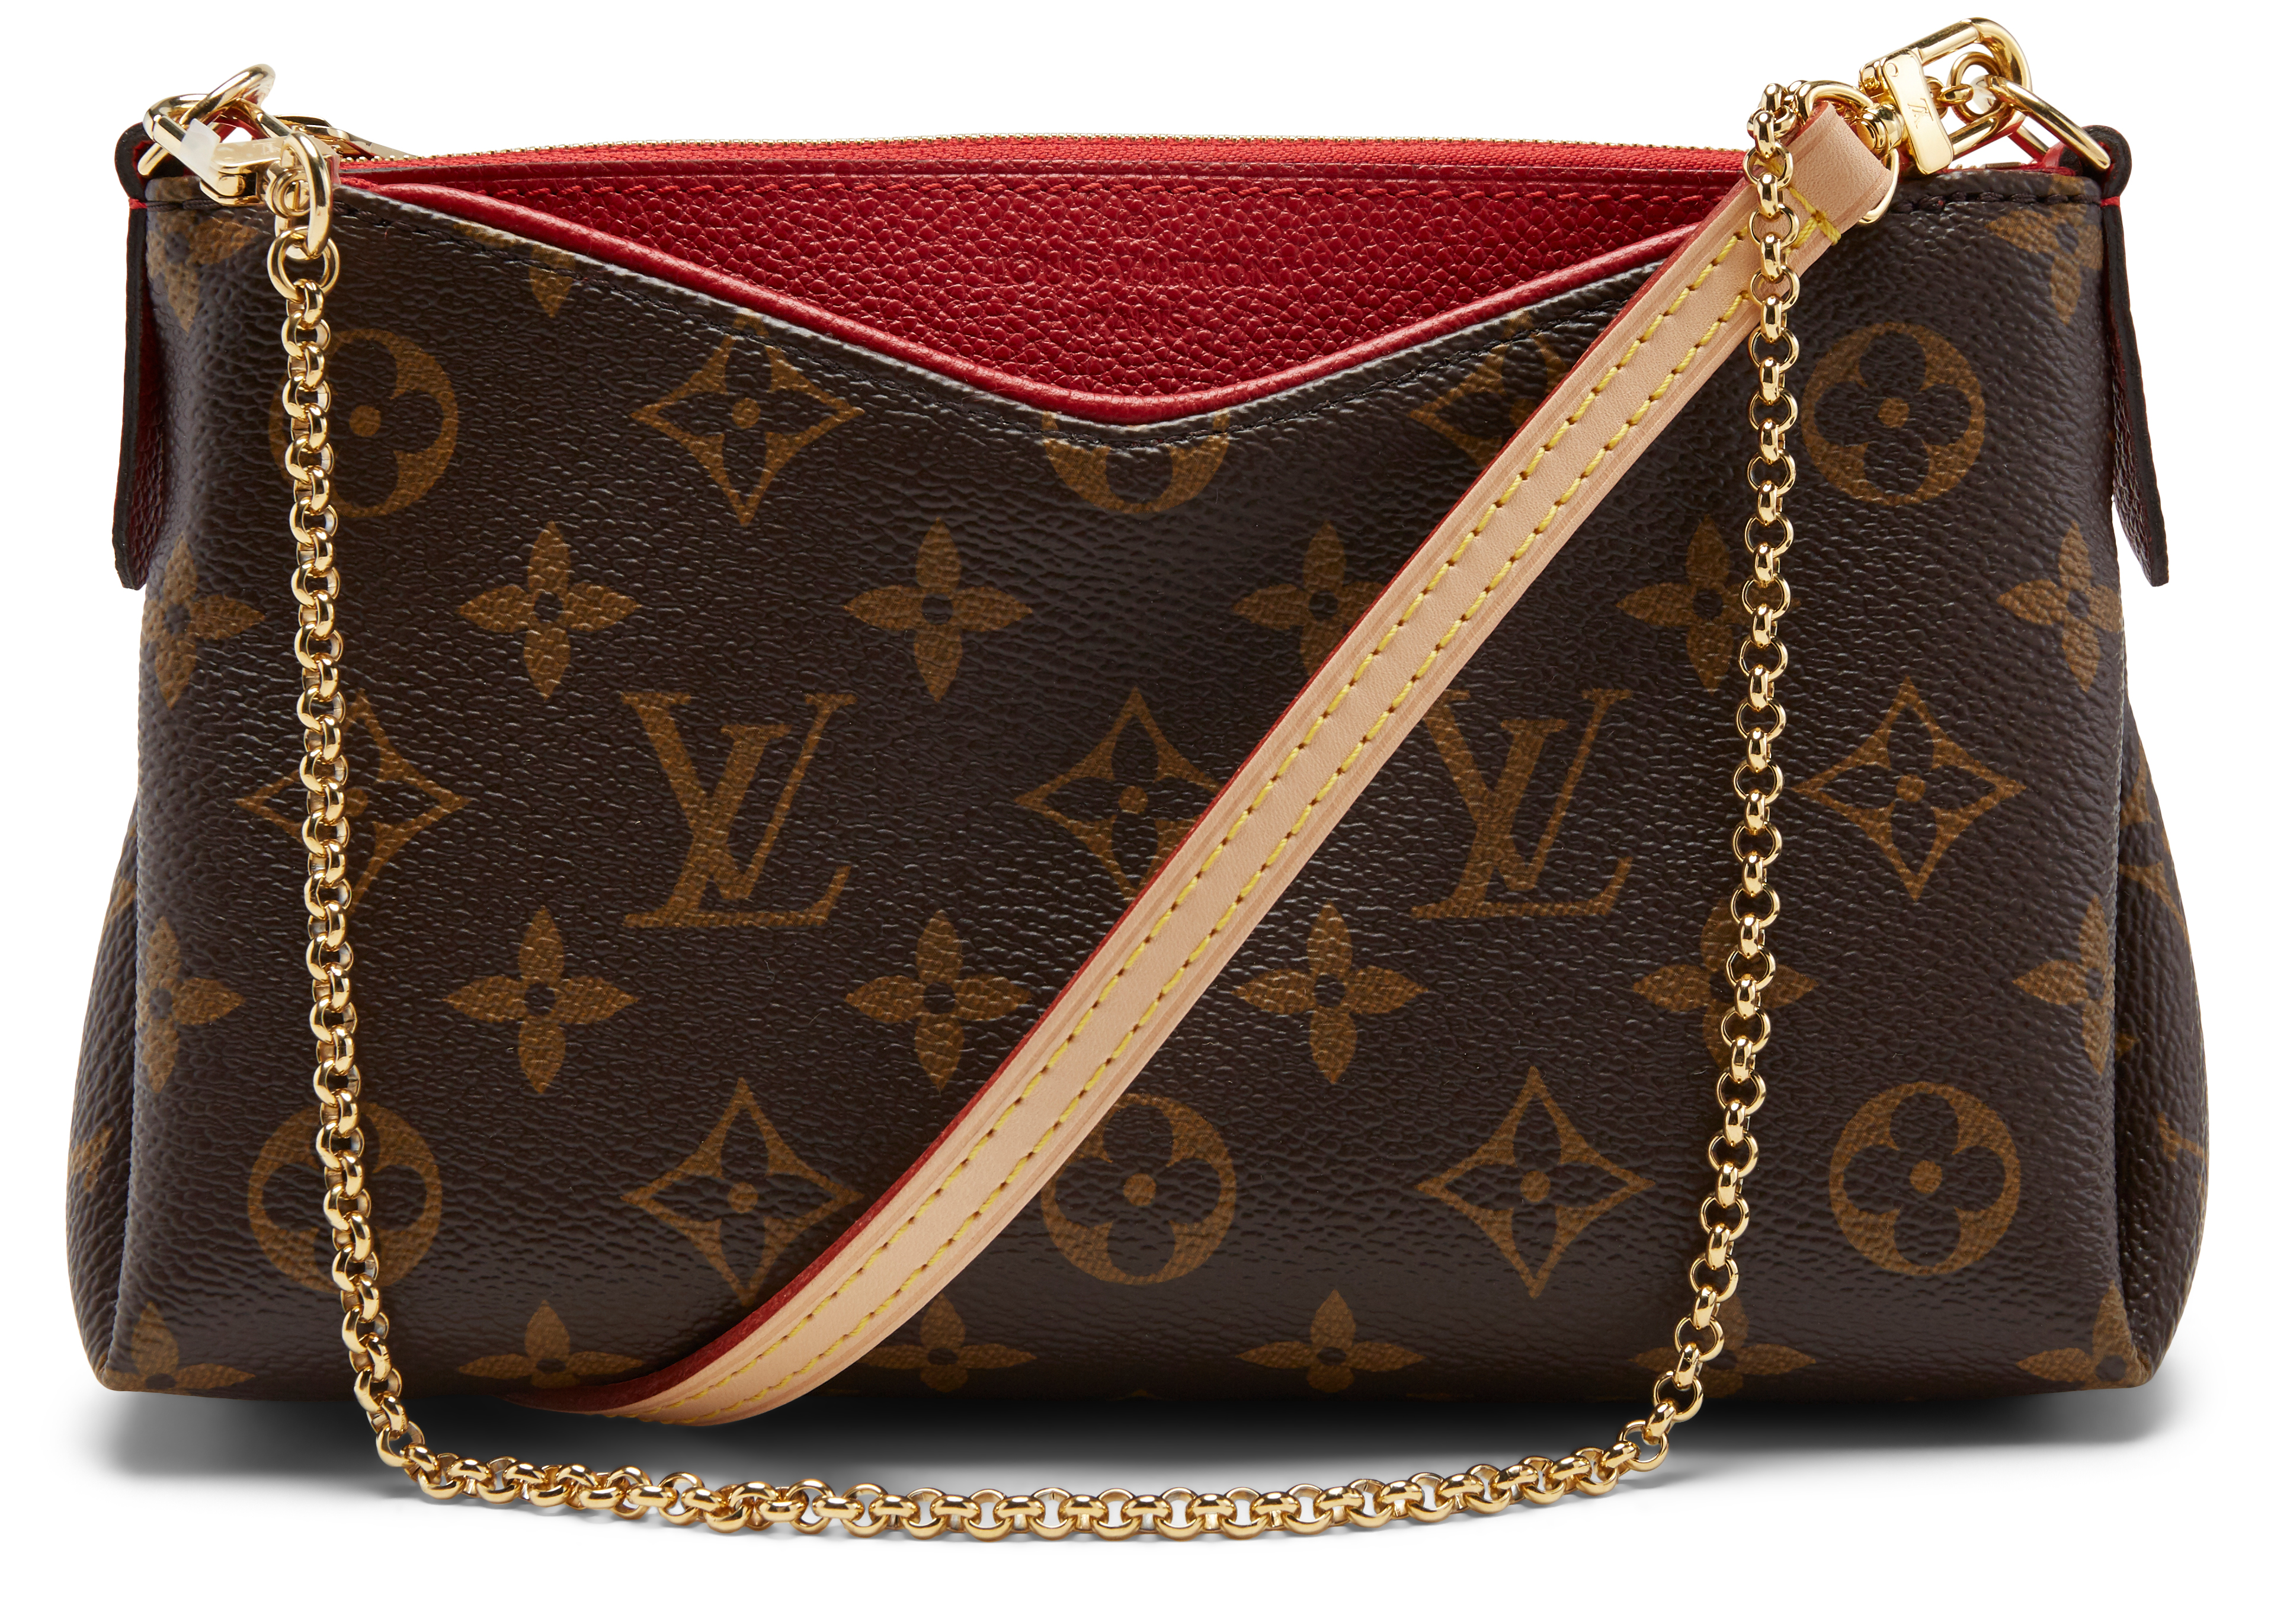 0671f8bb015 Pallas Clutch Monogram Brown in Brown,Red